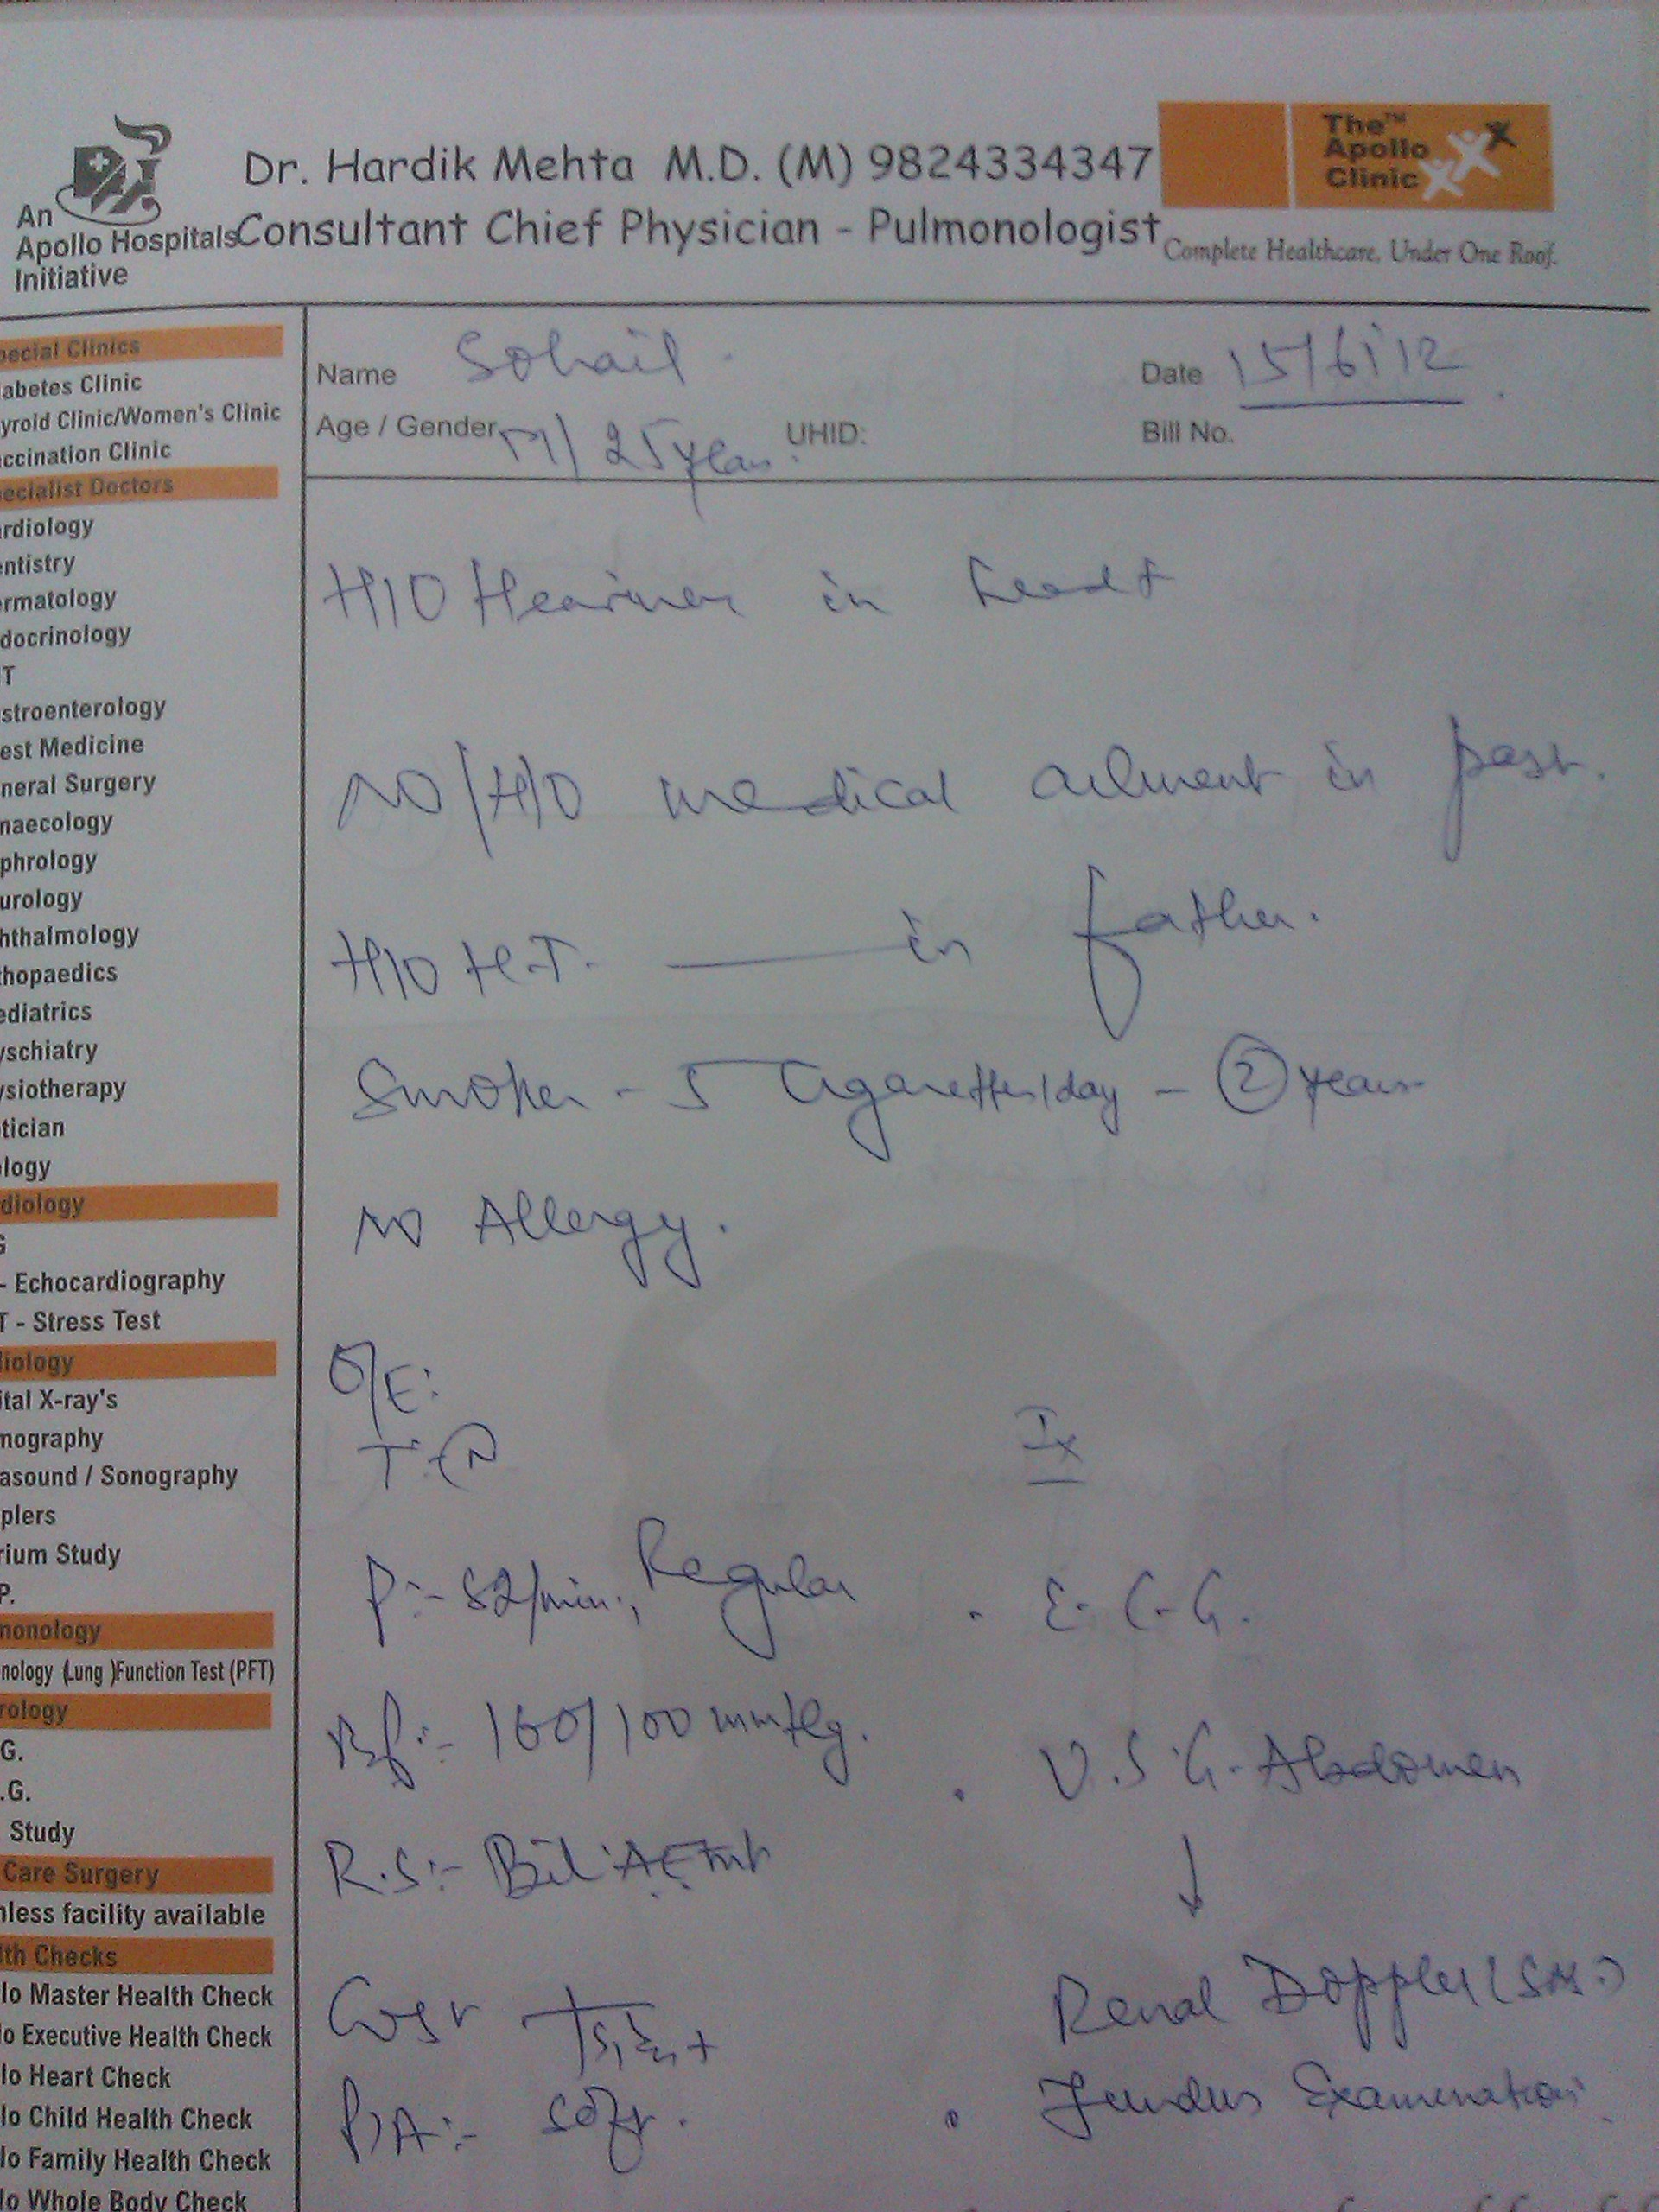 Prescription Page 1 of 2